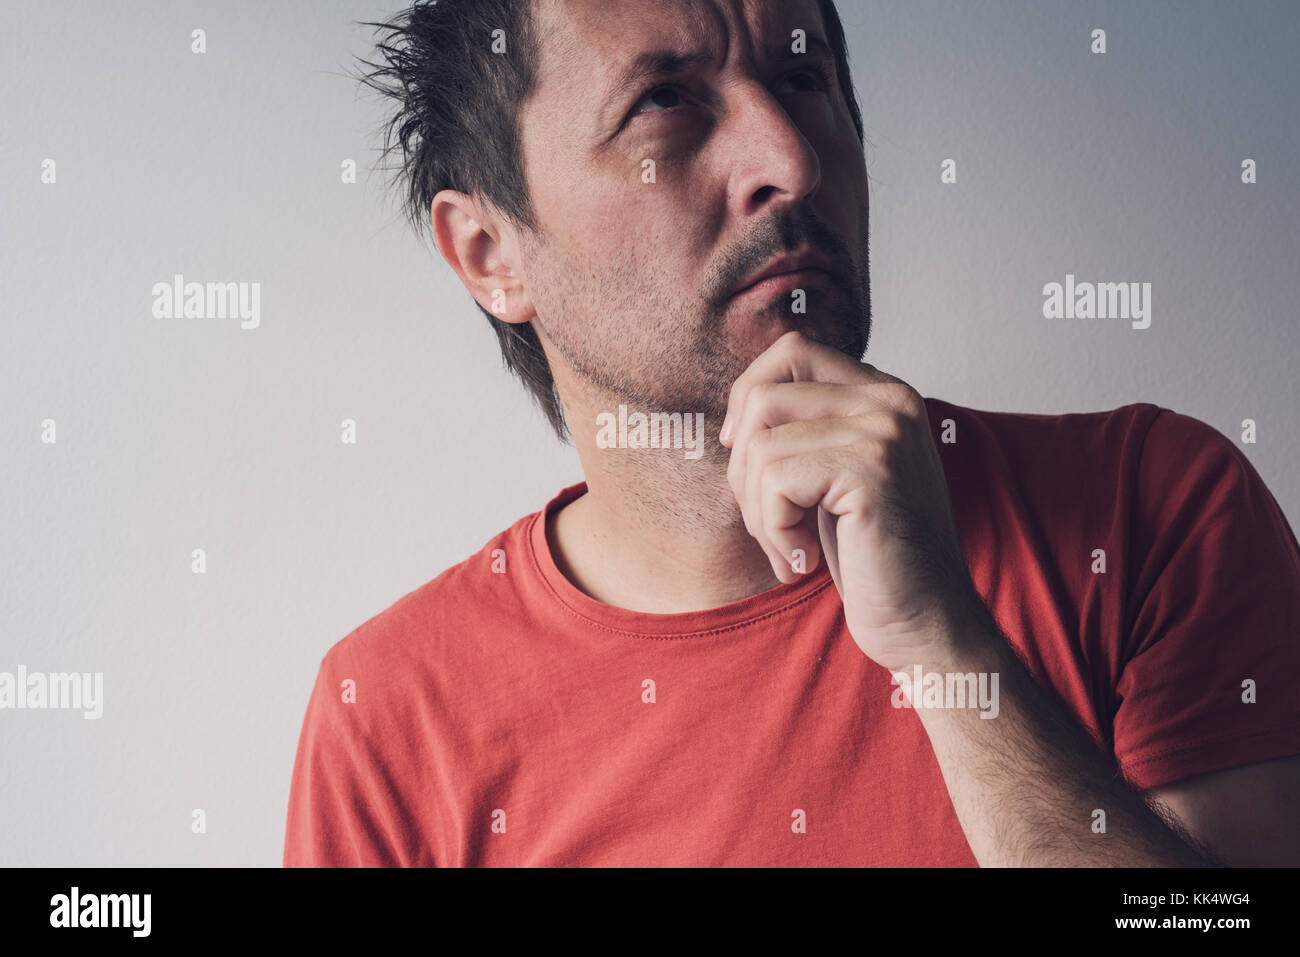 Serious portrait of adult caucasian man looking up and thinking, real people facial expressions - Stock Image